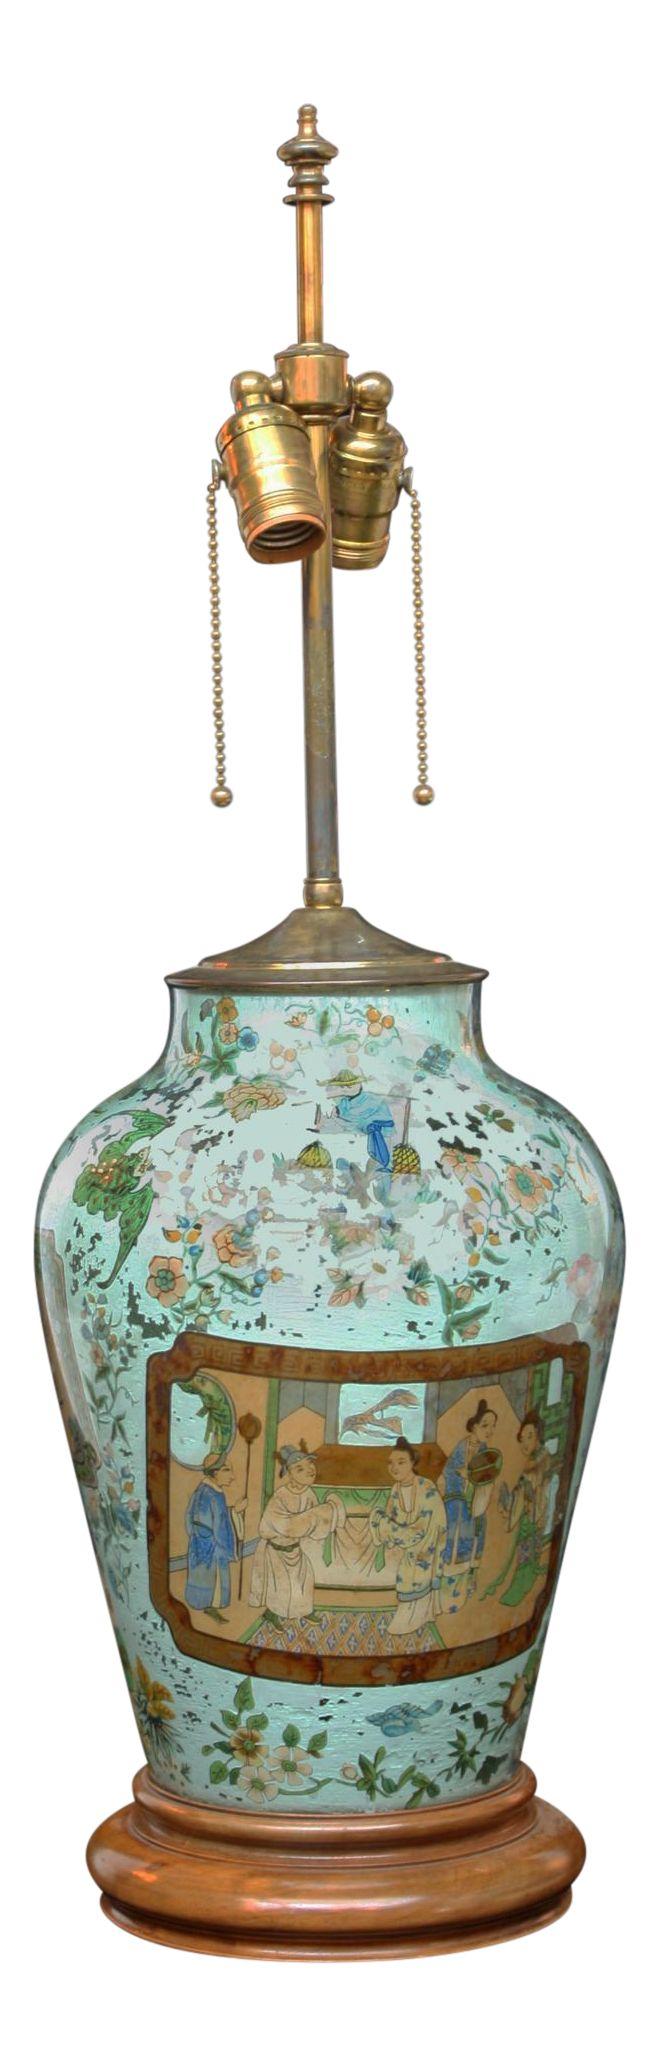 Chinese Decalcomania Glass Vase Turned Lamp with Chinese Motif on DECASO.com